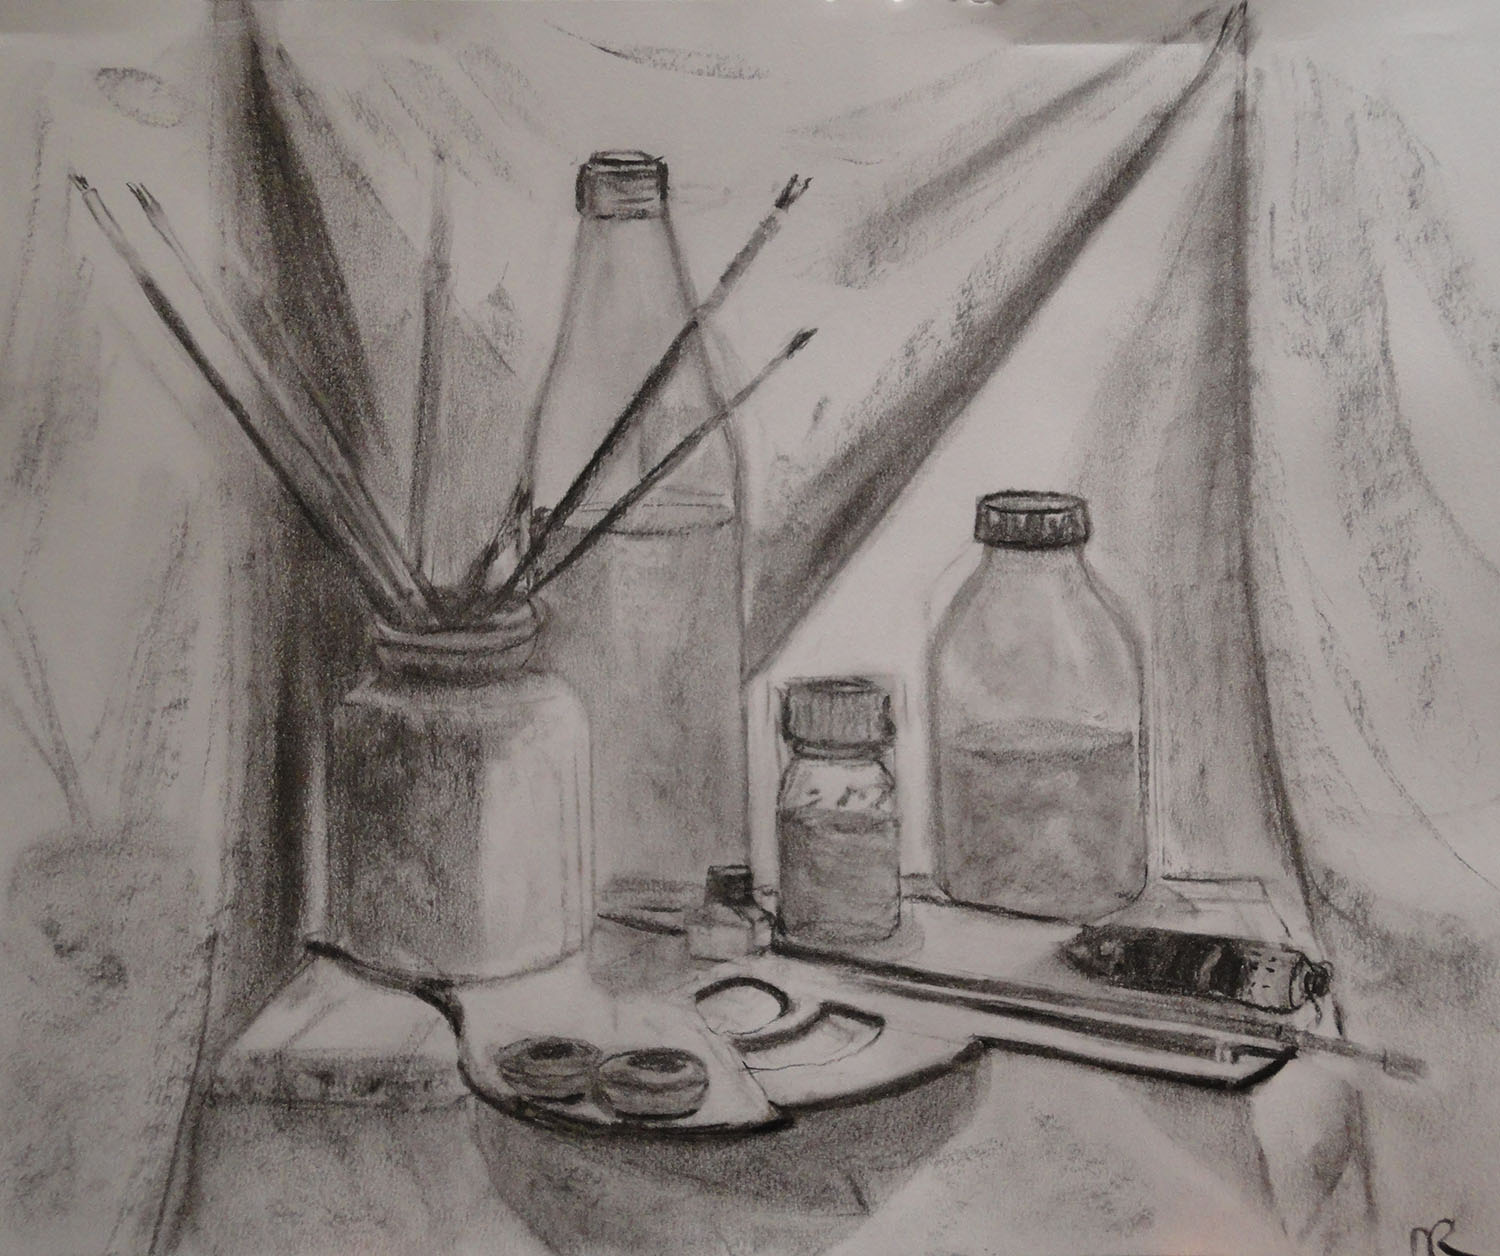 dessin-nature-morte-martine-cours-atp.jpg